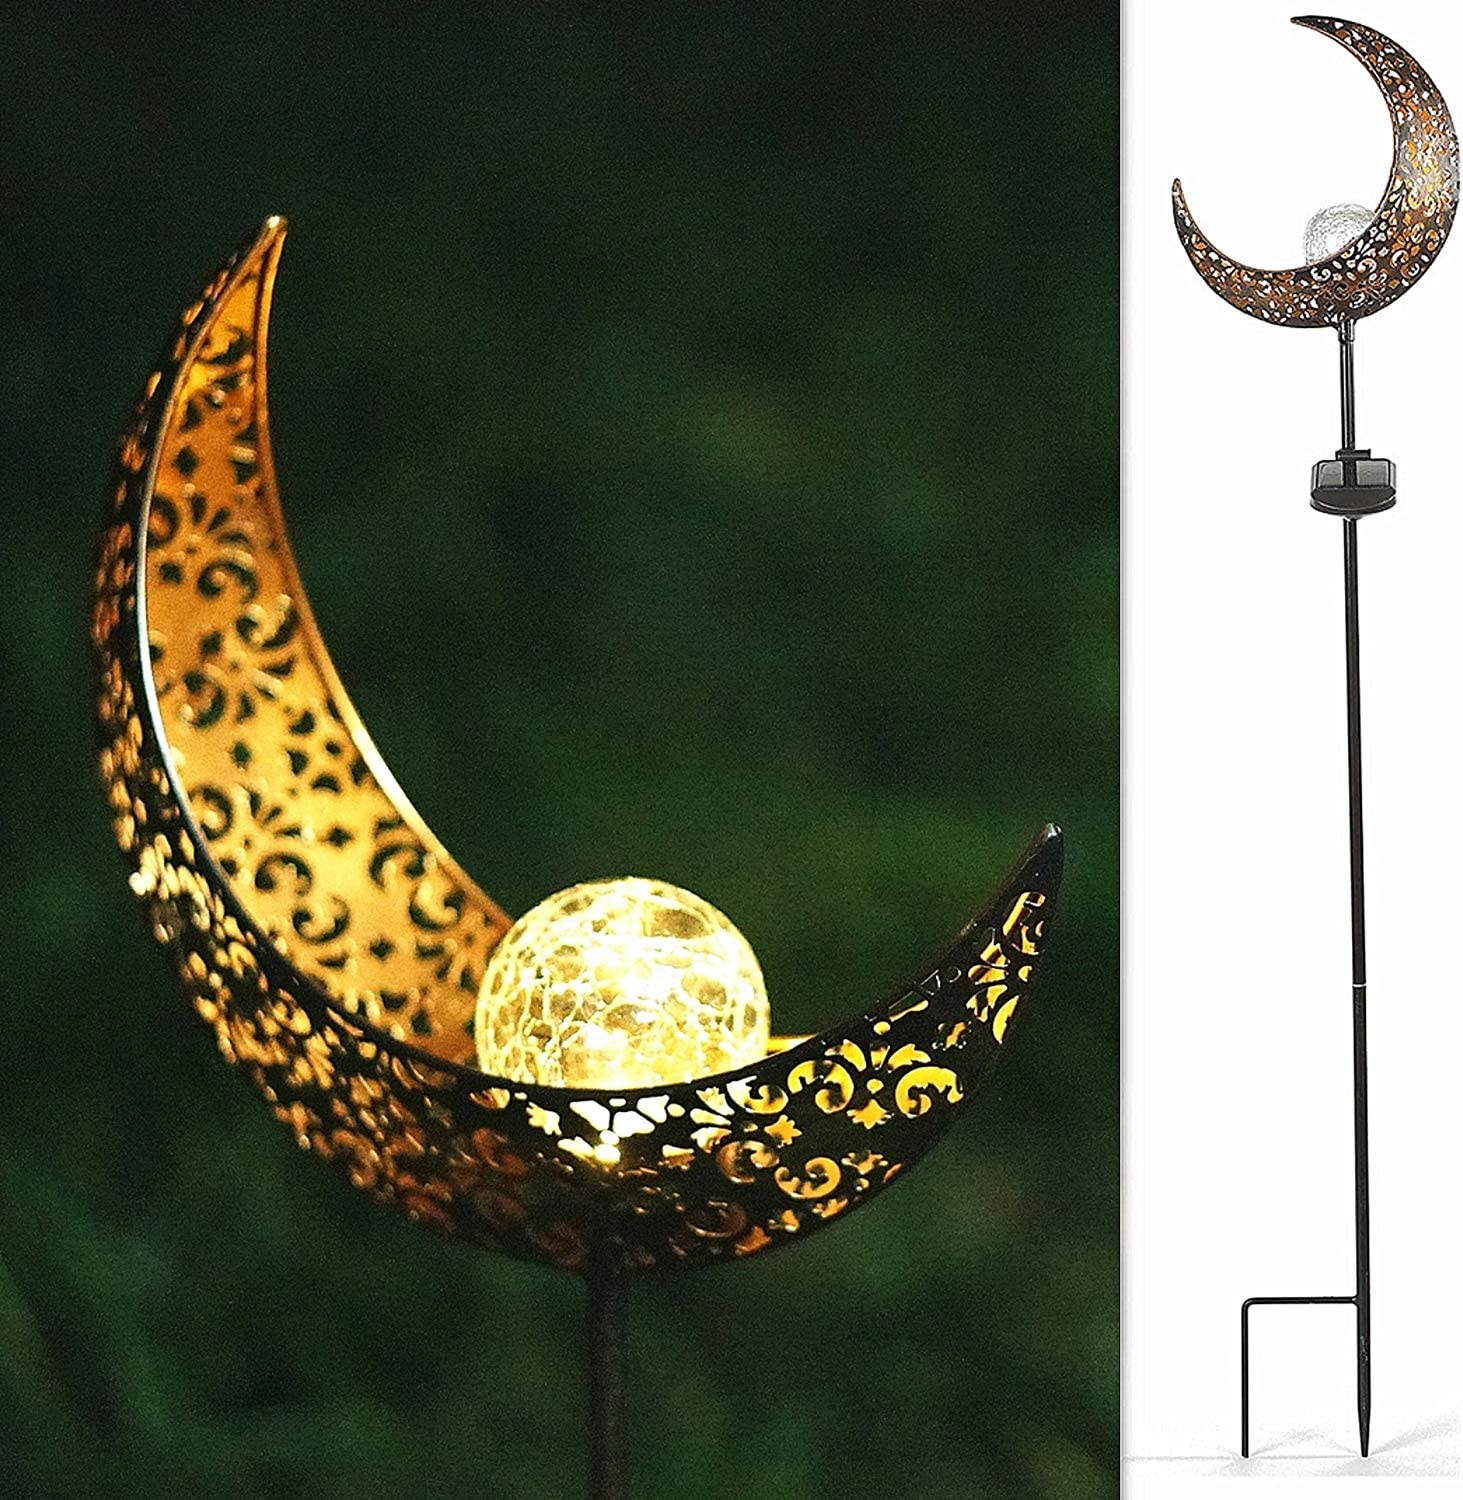 SunKite 1 Pack Garden Solar Light Outdoor Metal Moon Shape Lamp with Waterproof Crackle Glass Globe for Garden,Lawn,Patio,Pathway or Courtyard